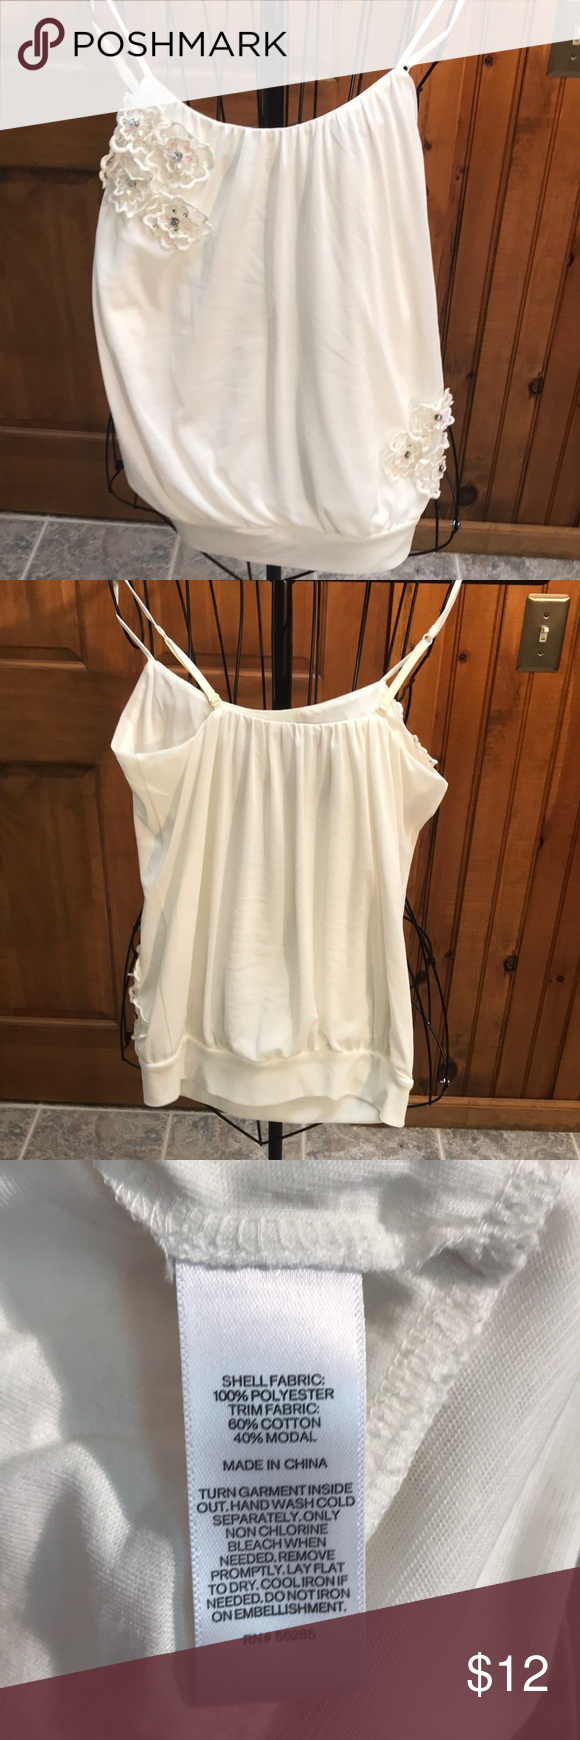 7f1219a496e44 Express Tank Top Cream colored Flowers with rhinestone accents Spaghetti  strap-adjustable Lined Banded bottom Shows some wear -Still has lots of  life ...